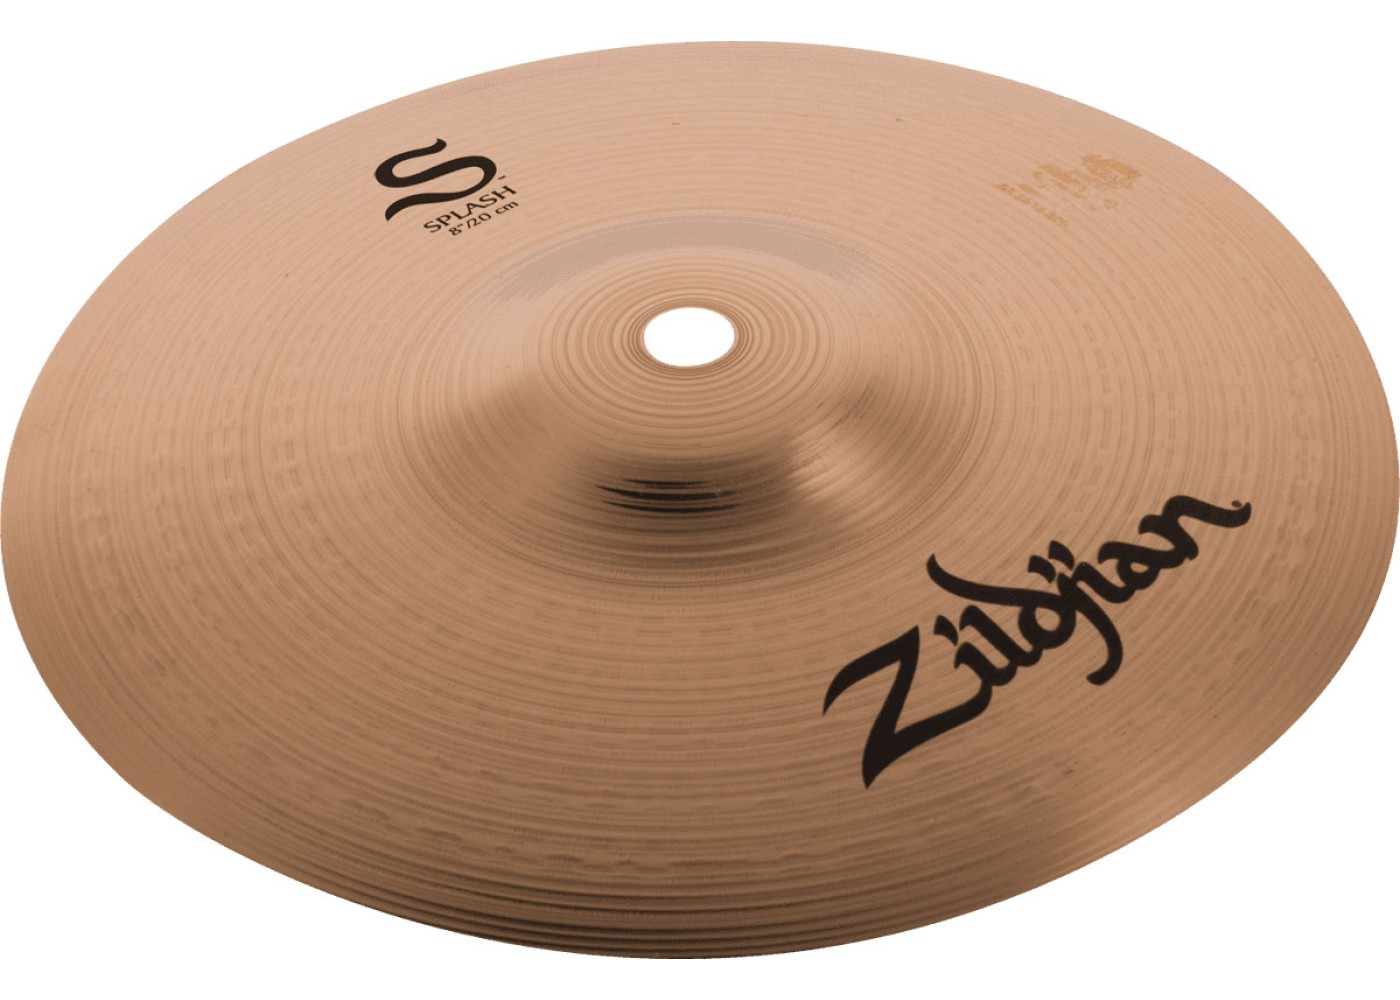 shop for zildjian s8s 8 inch s series splash cymbal at world music supply for best price online. Black Bedroom Furniture Sets. Home Design Ideas